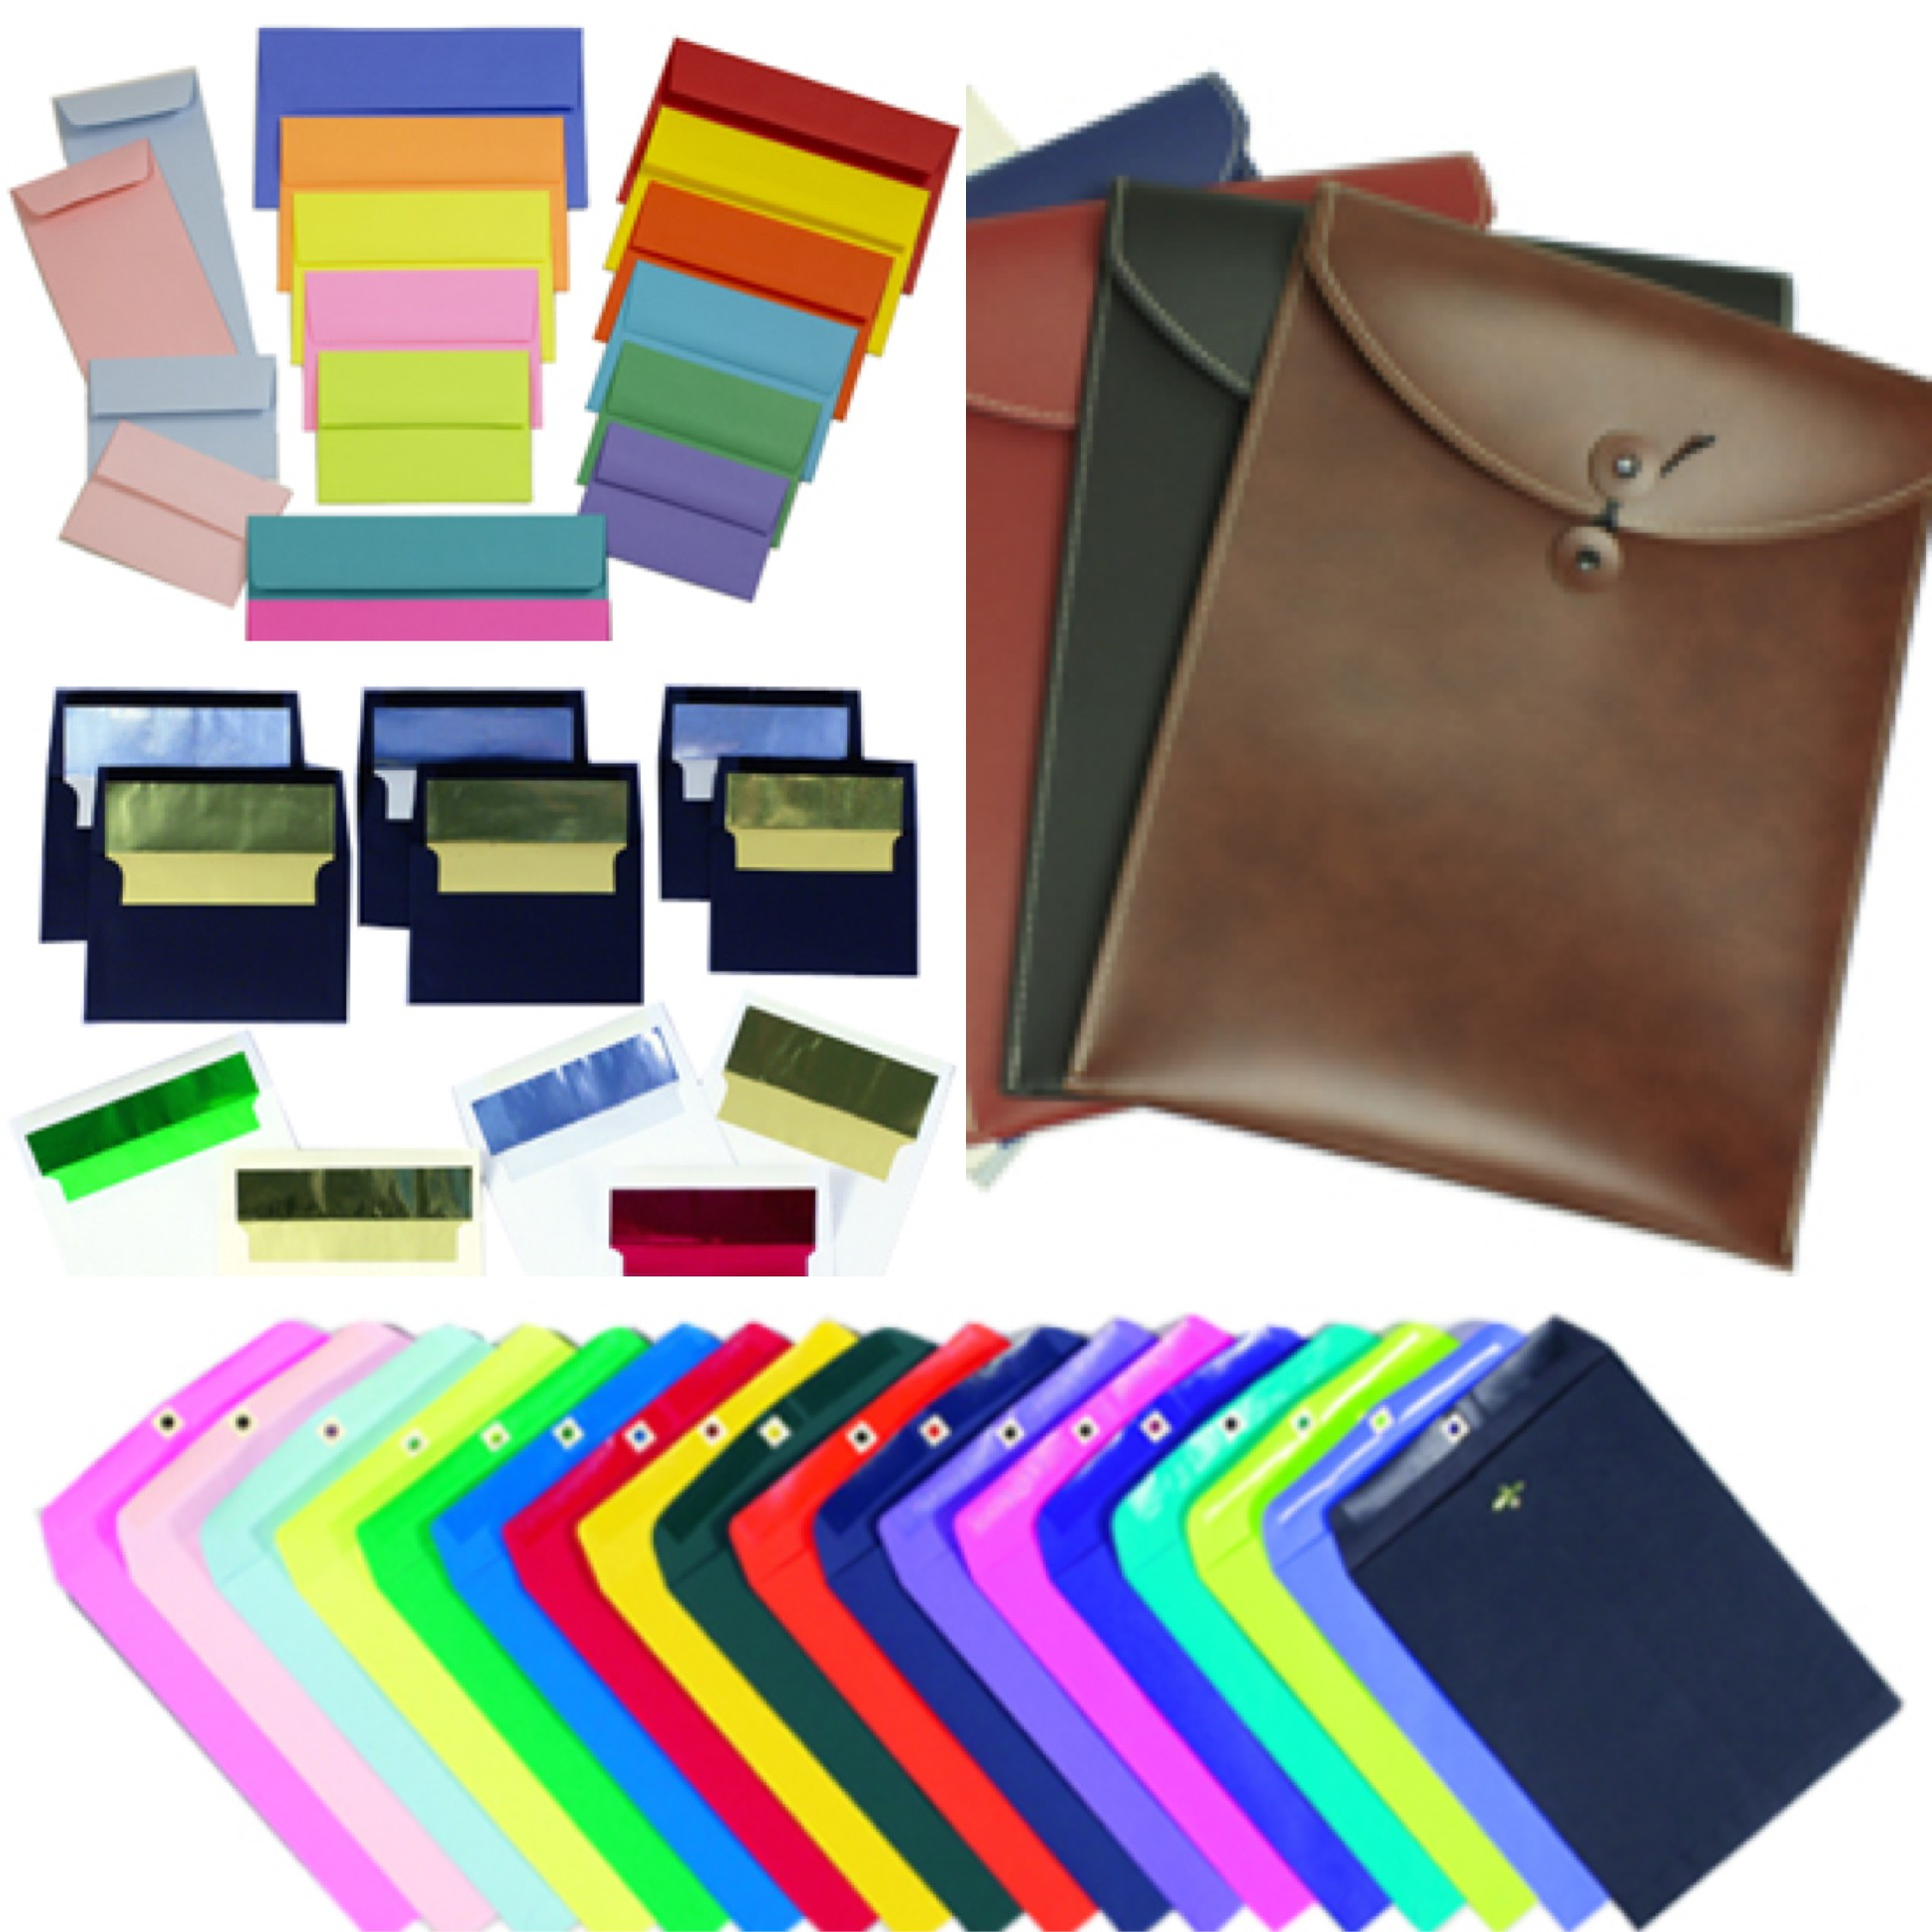 amazing envelopes assortment of foil-lined, policy, straight-flap, open-clasp, and portfolio envelopes